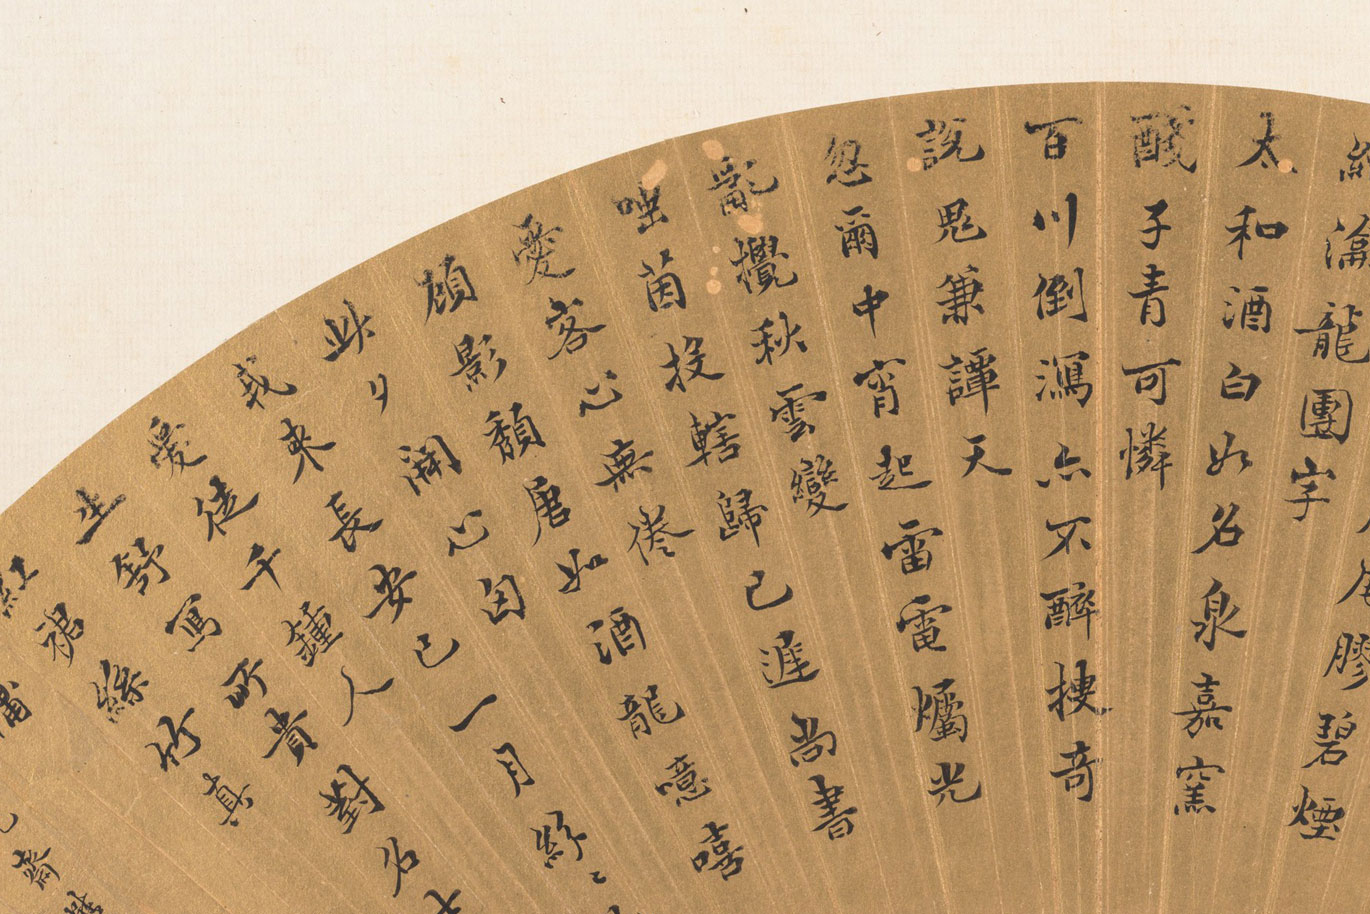 Calligraphy on folding fan by Wang Maolin